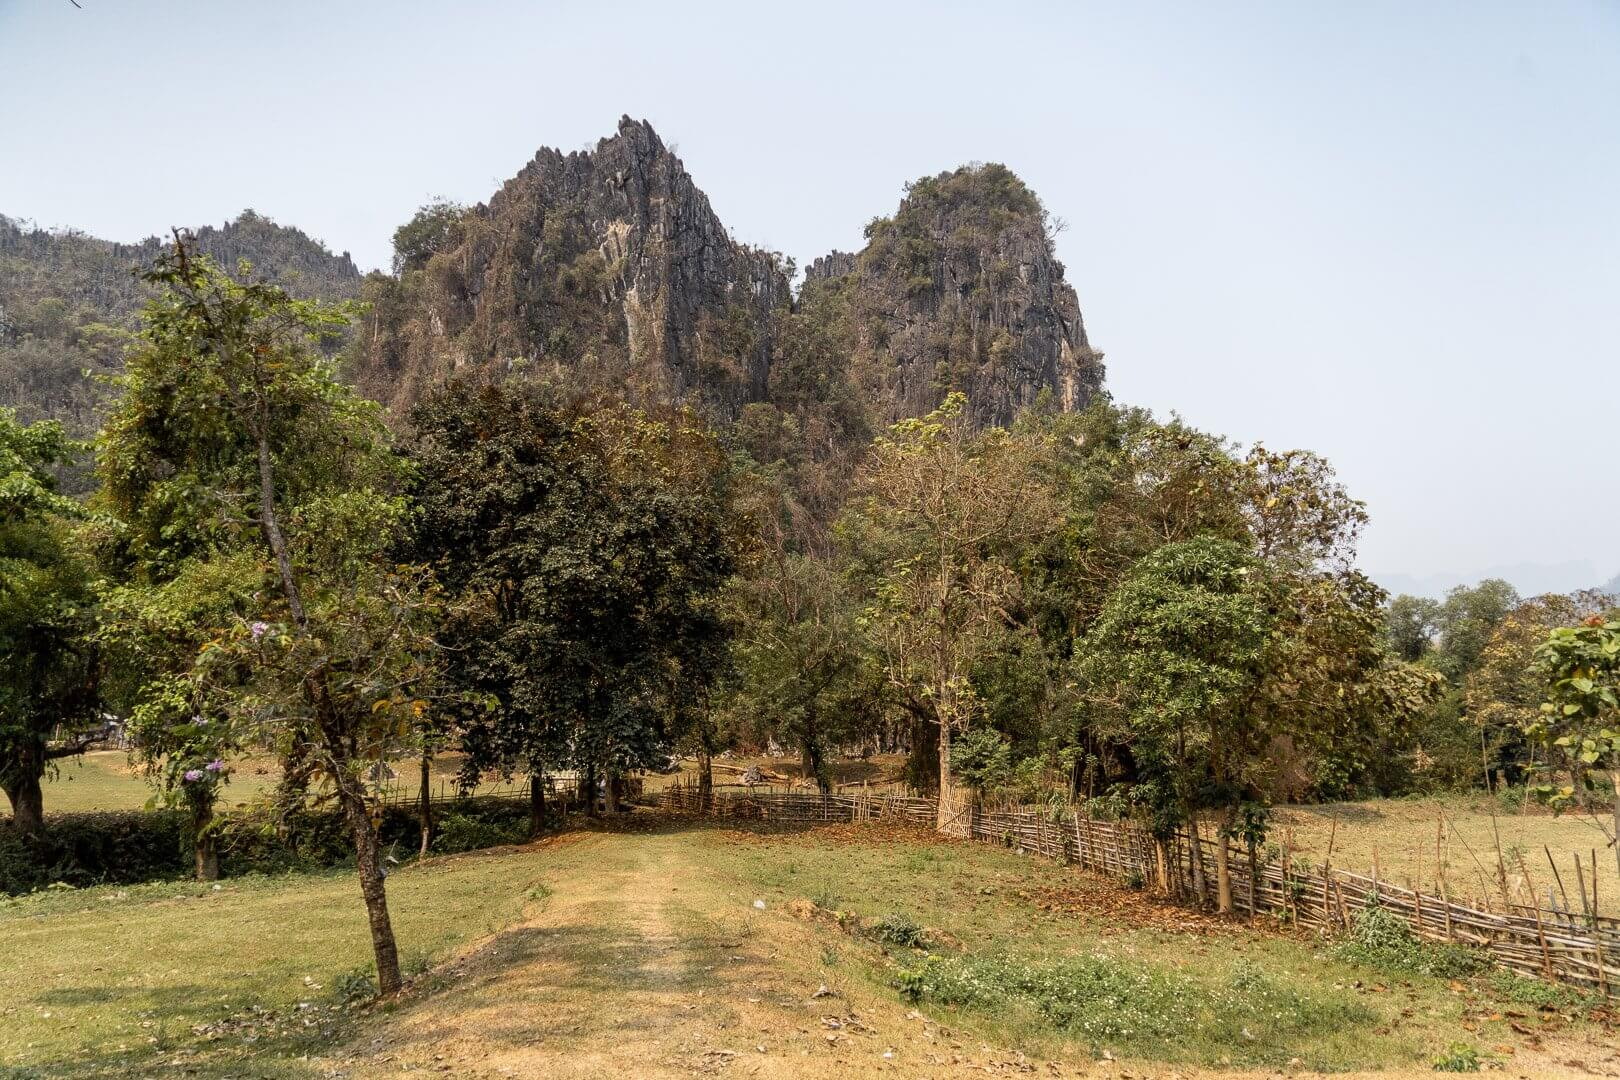 The large limestone cliffs that surround the town of Vang Vieng in Laos